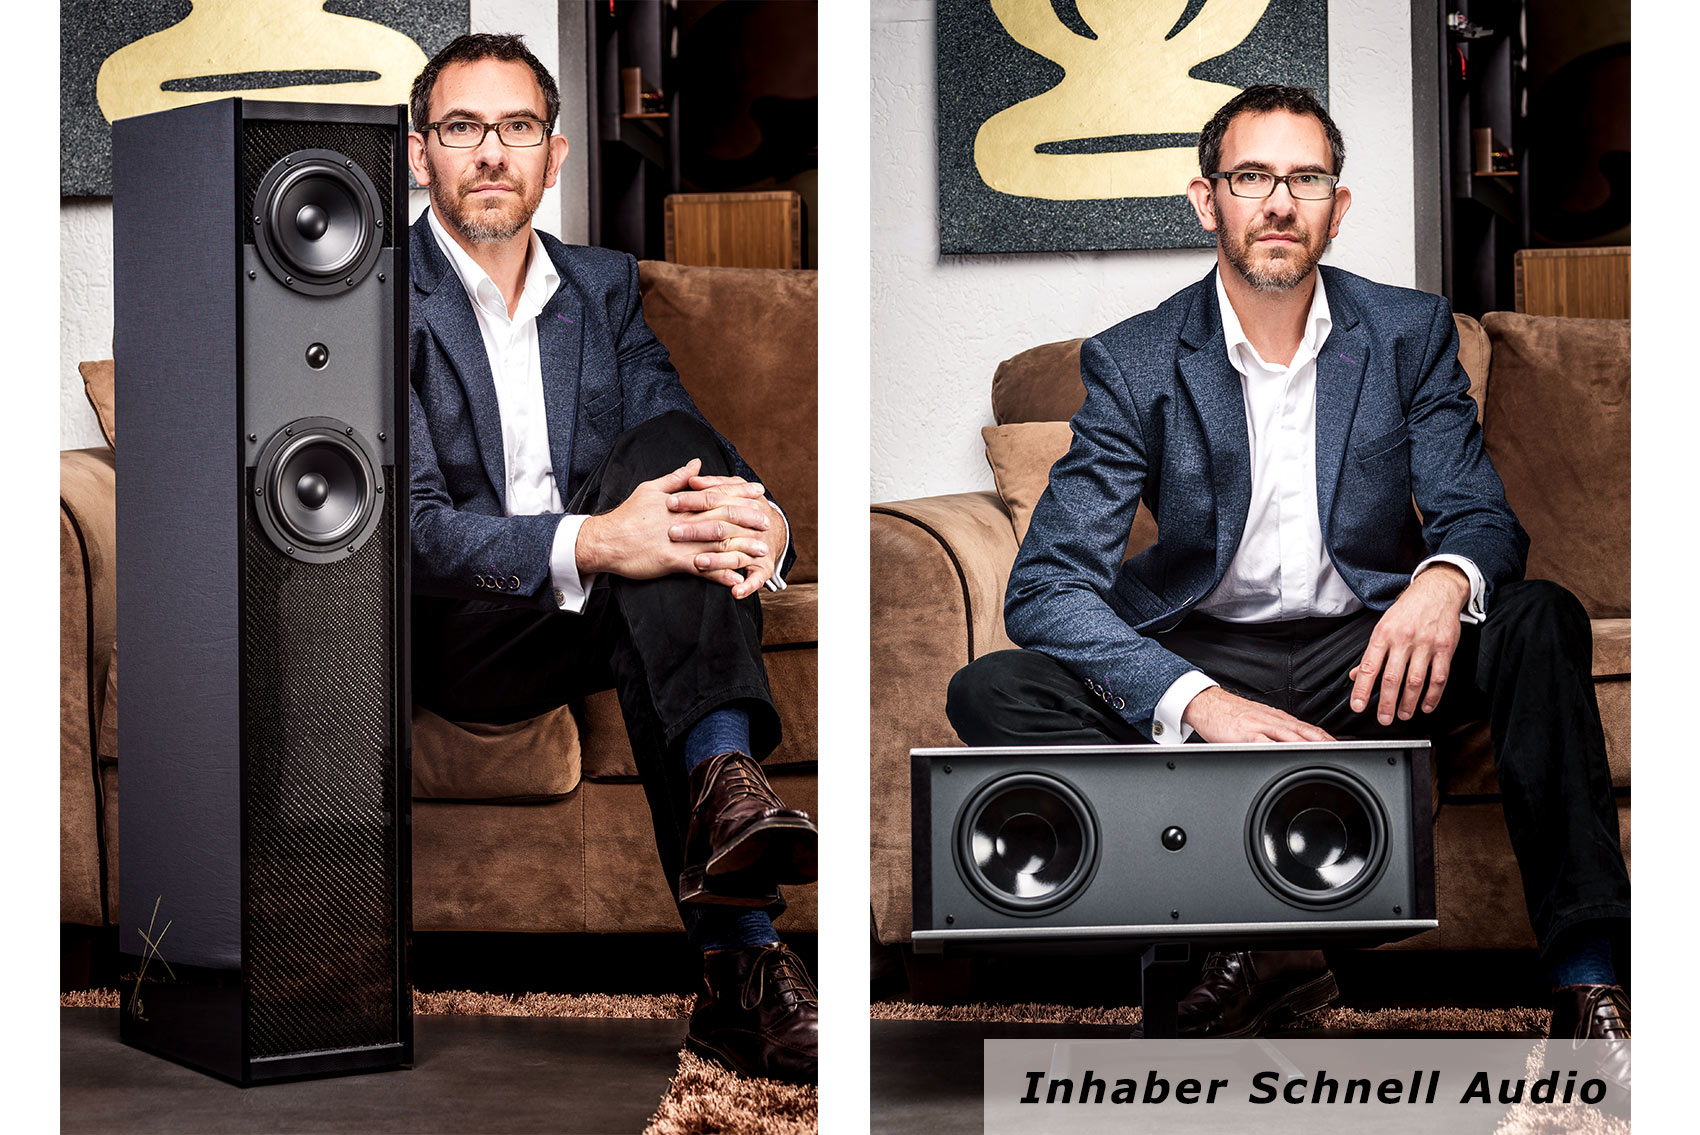 inhaber highend audio schnellaudio